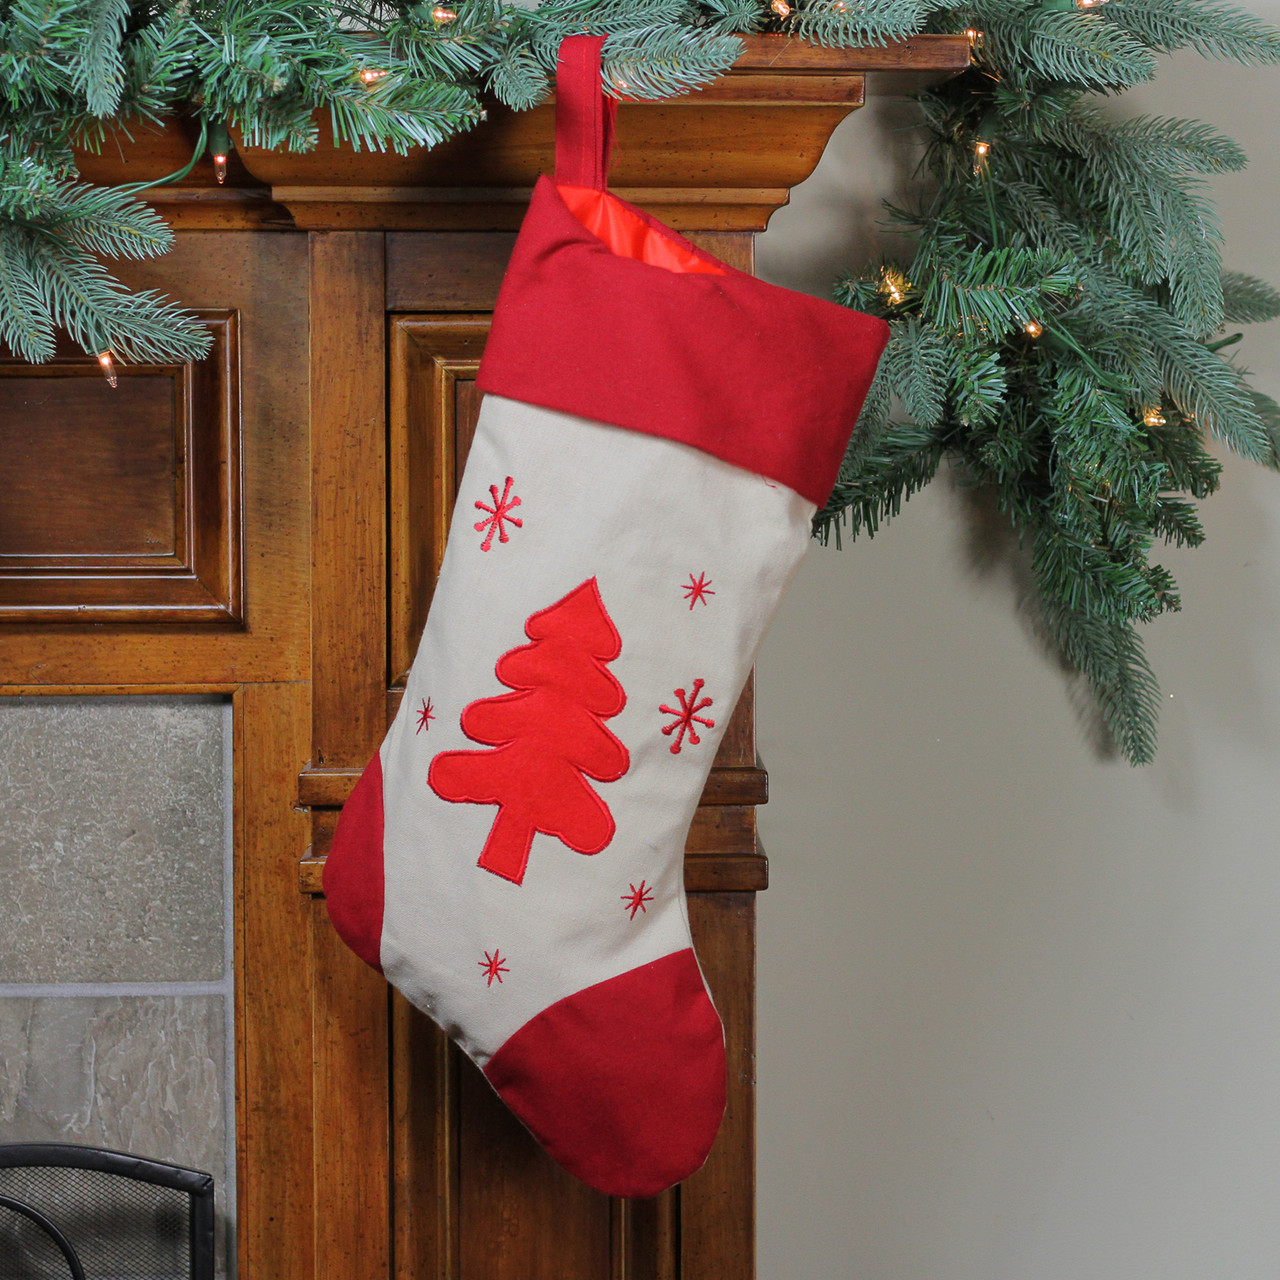 18 white and red tree with snowflakes rustic christmas stocking with red cuff 32635495 - Rustic Christmas Stocking